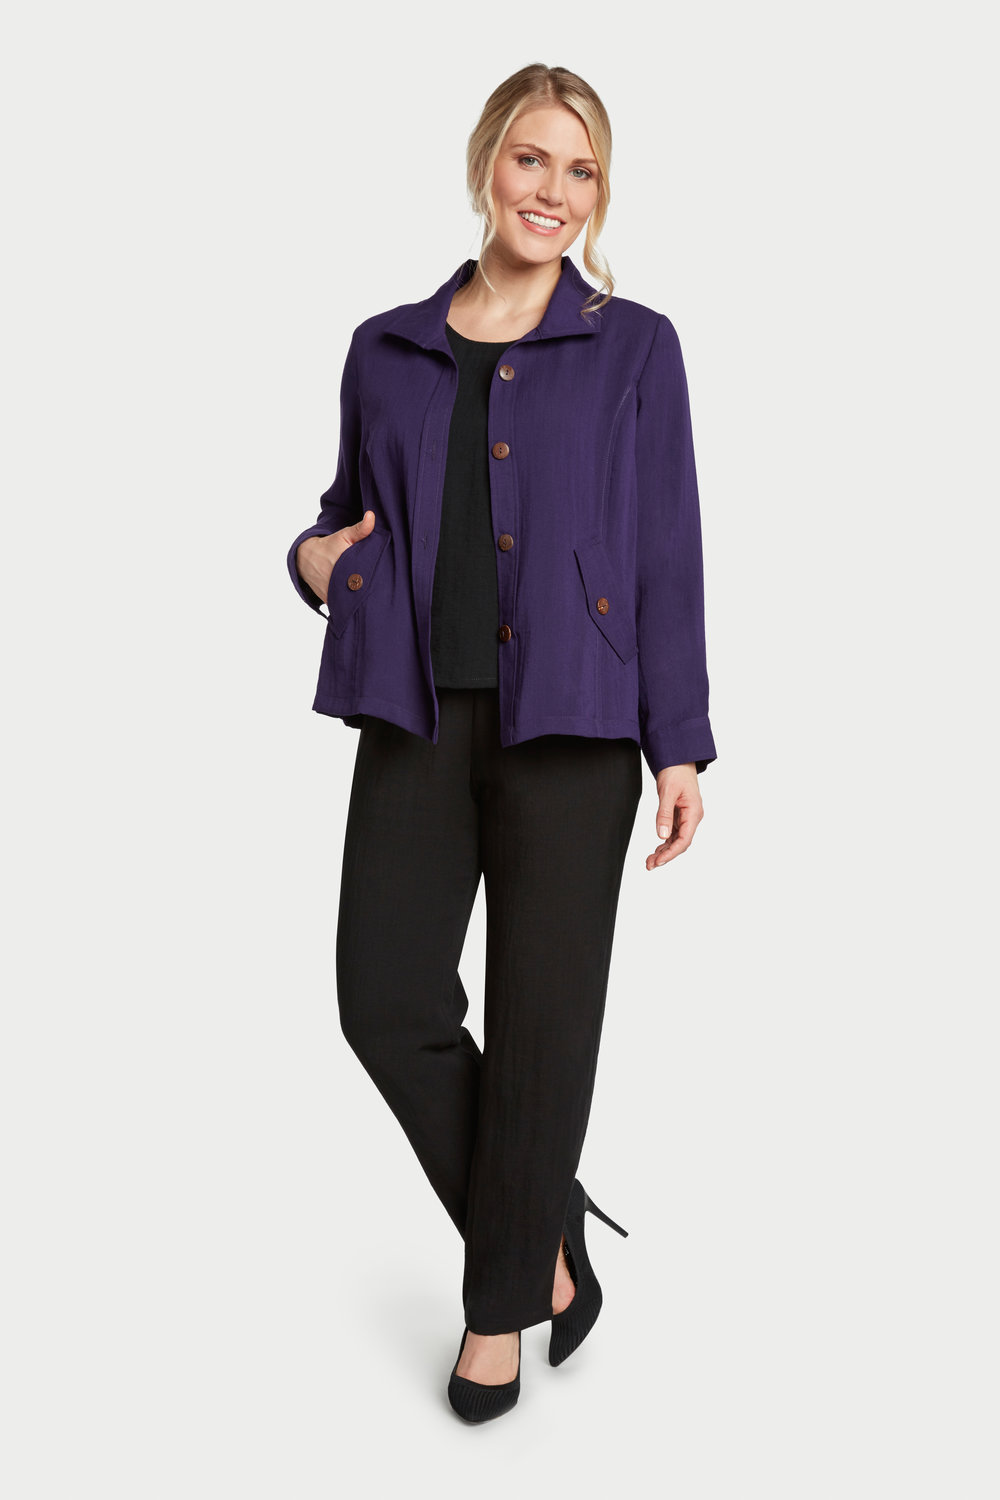 AA242 - Florence False-Flap Pocket Jacket    Plum - CL4385